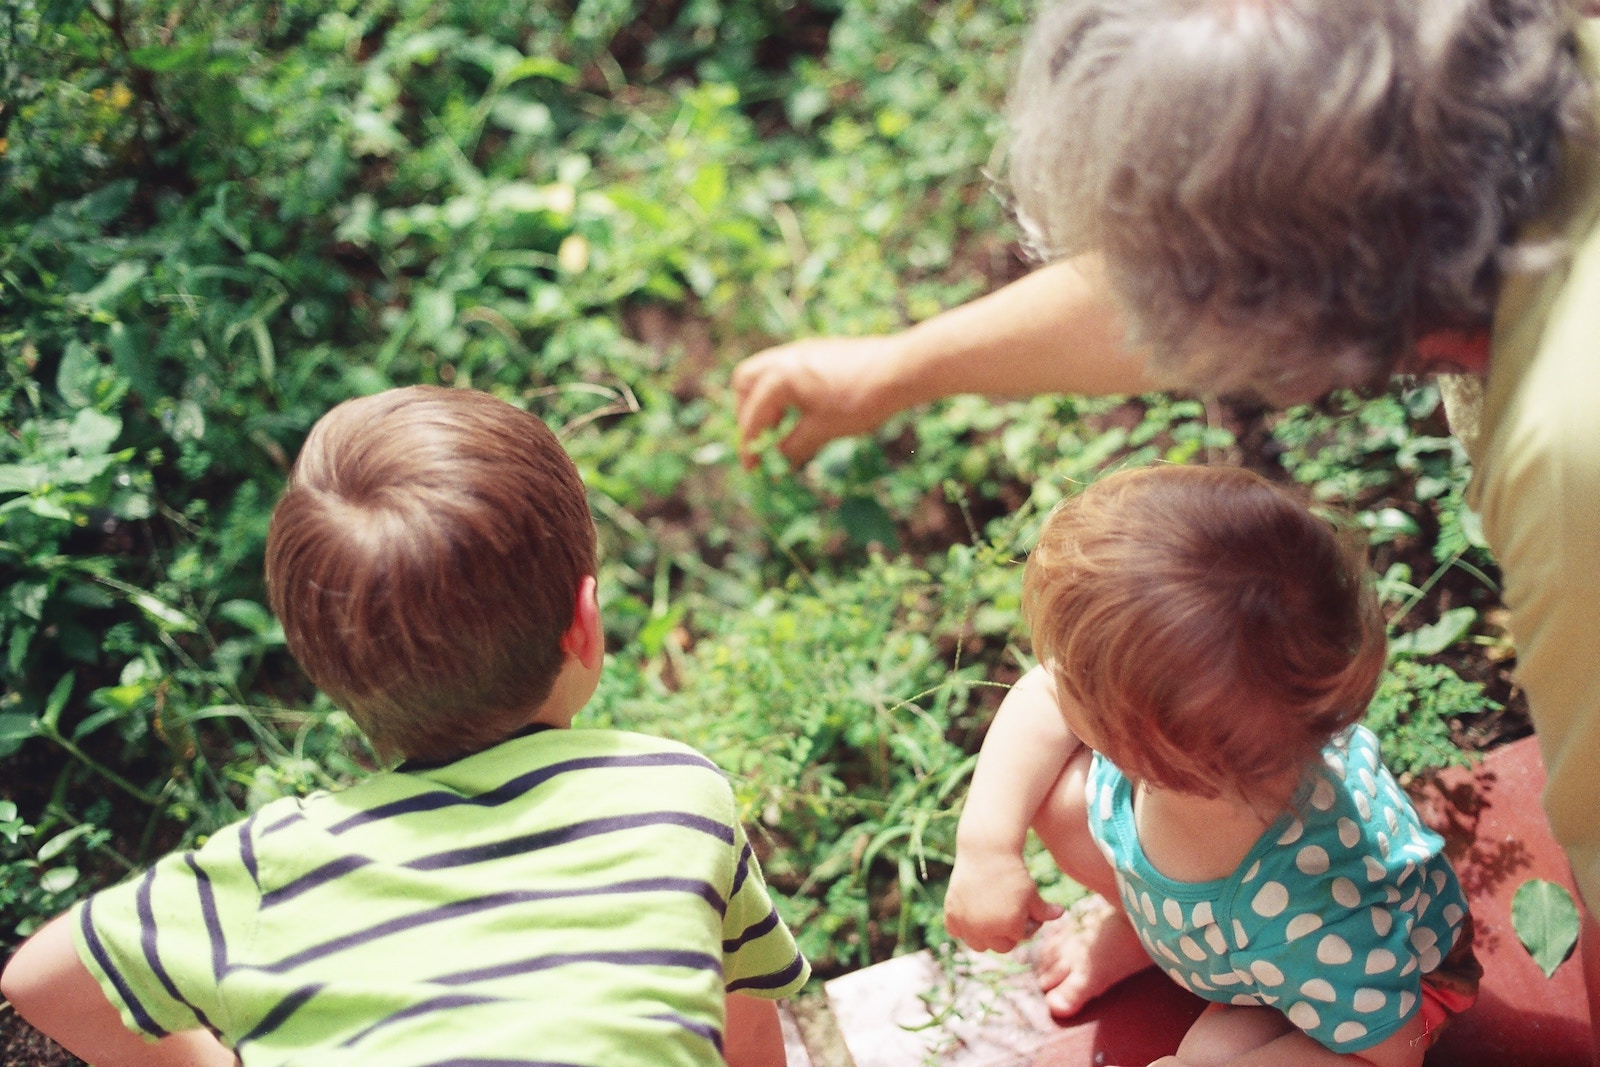 Nature trail: a grandma points into bushes with two young children